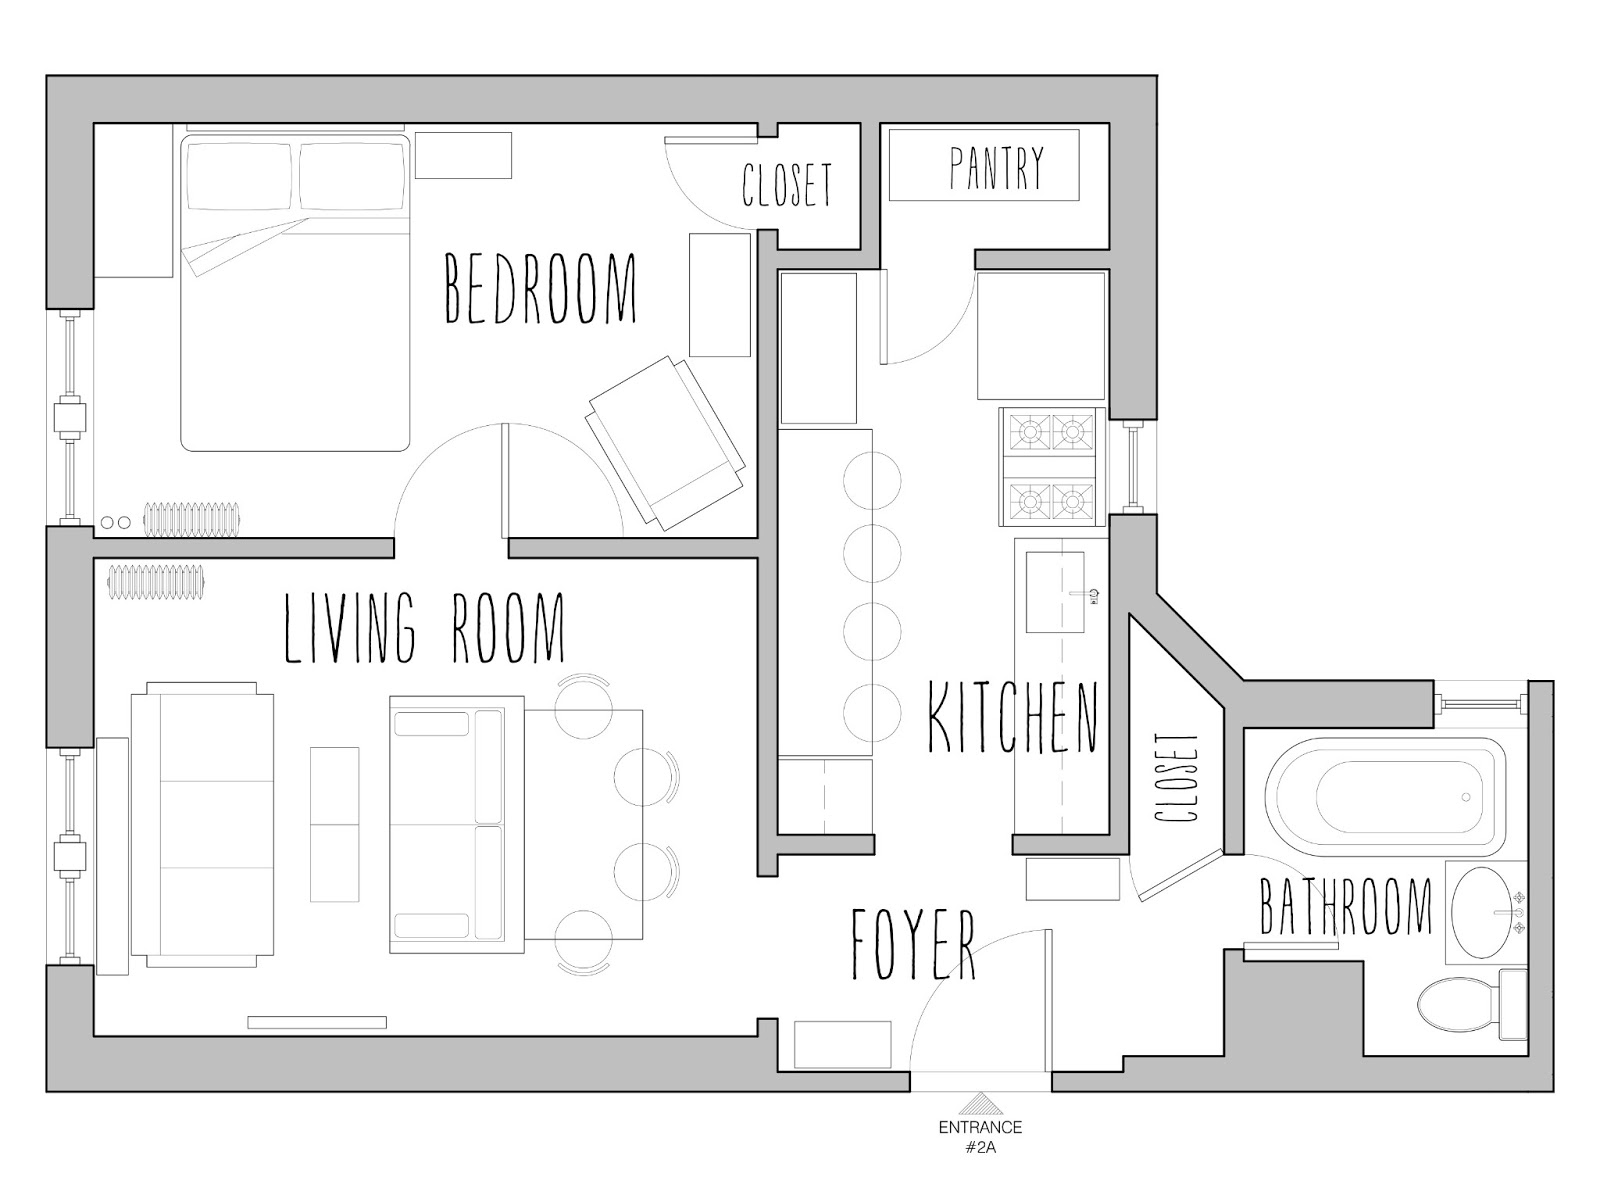 Stunning House Plan For 500 Sq Ft Ideas House Plans